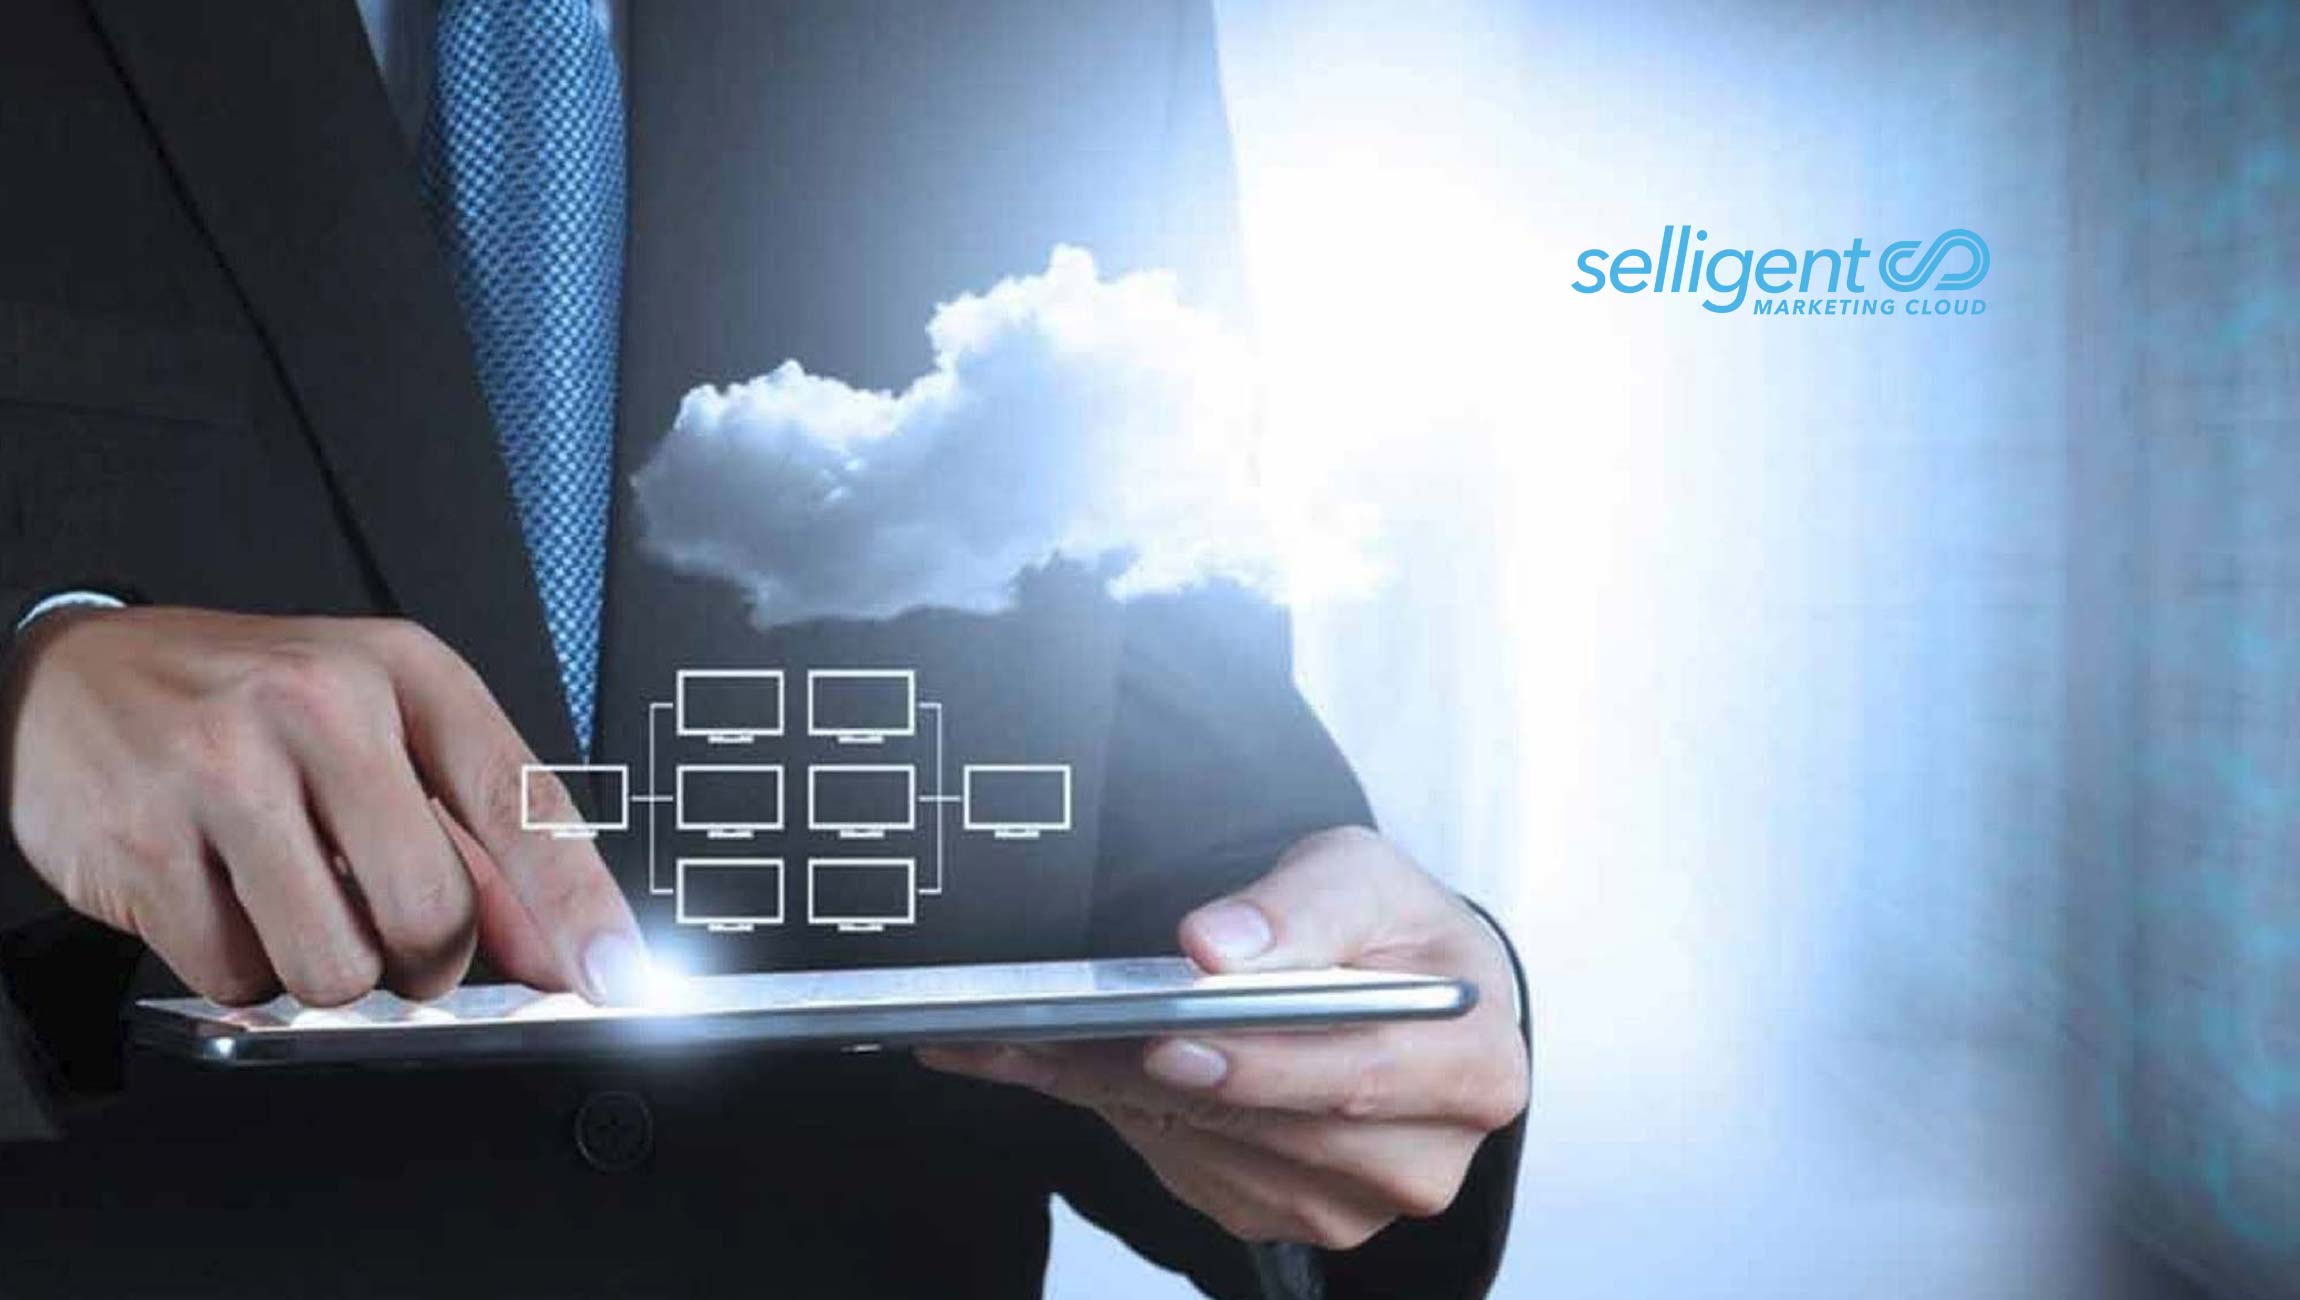 Selligent Names Acceleration, ONE Marketing and Reply Winners of 2020 Partner Awards